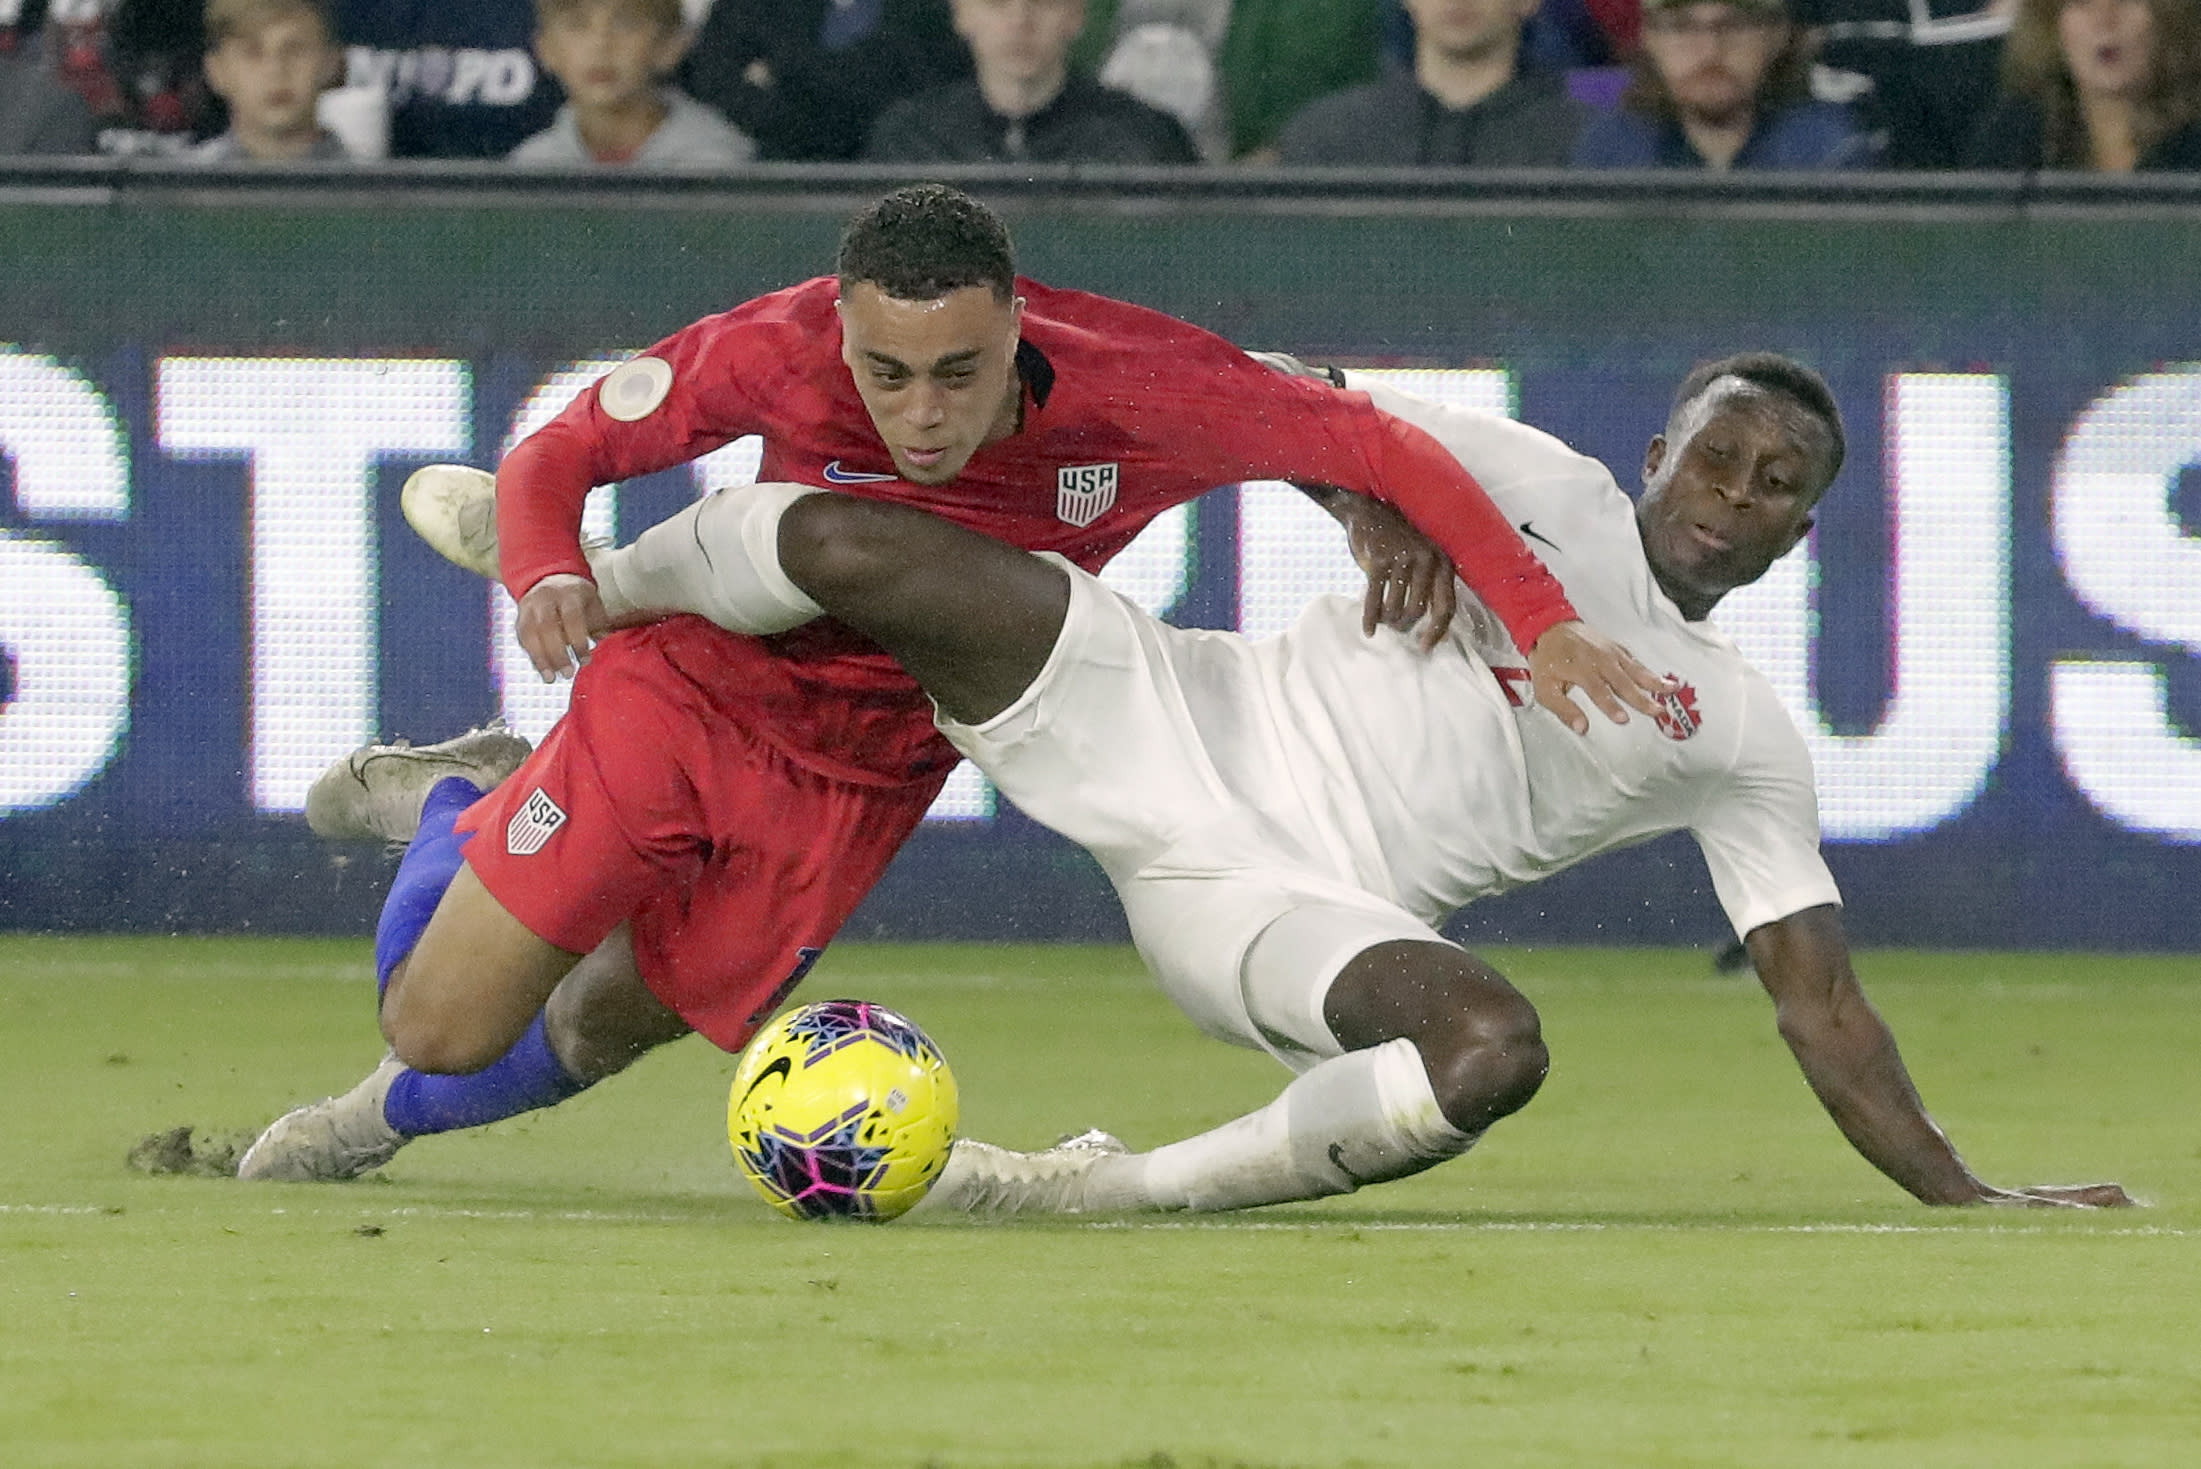 U.S. defender Sergino Dest, left, gets tangled up with Canada defender Richie Laryea while going after the ball during the first half of a CONCACAF Nations League soccer match Friday, Nov. 15, 2019, in Orlando, Fla. (AP Photo/John Raoux)